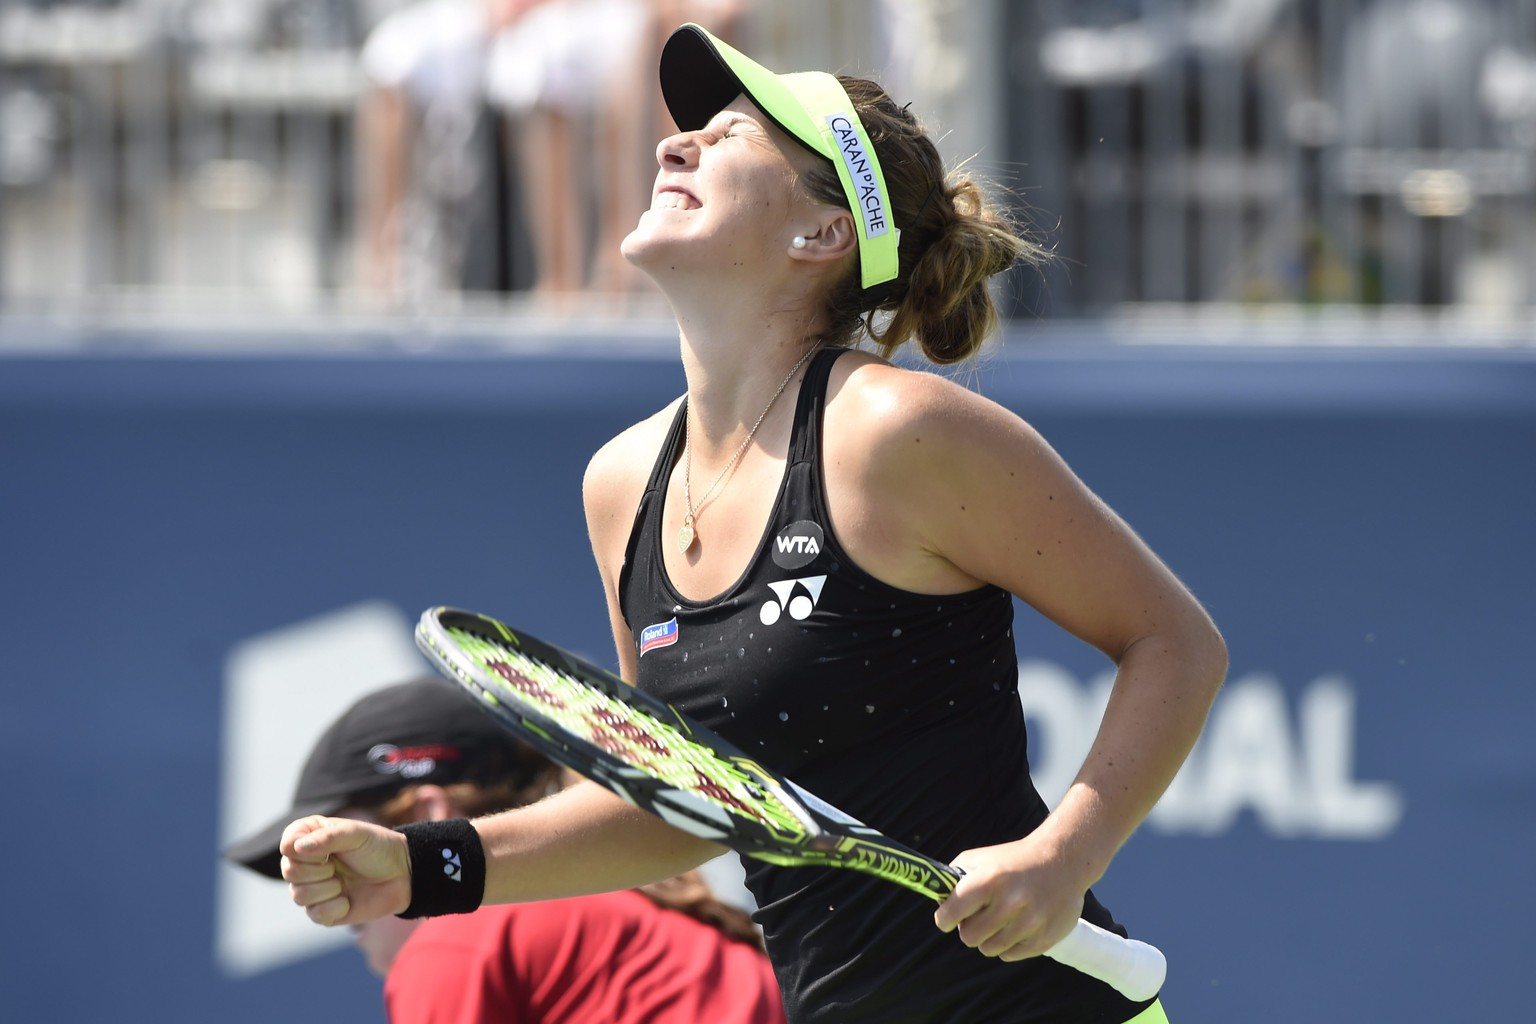 Belinda Bencic, of Switzerland, celebrates her win over Sabine Lisicki, of Germany, in the Rogers Cup women's tennis tournament in Toronto, Thursday, Aug. 13, 2015. (Frank Gunn/The Canadian Press via AP) MANDATORY CREDIT